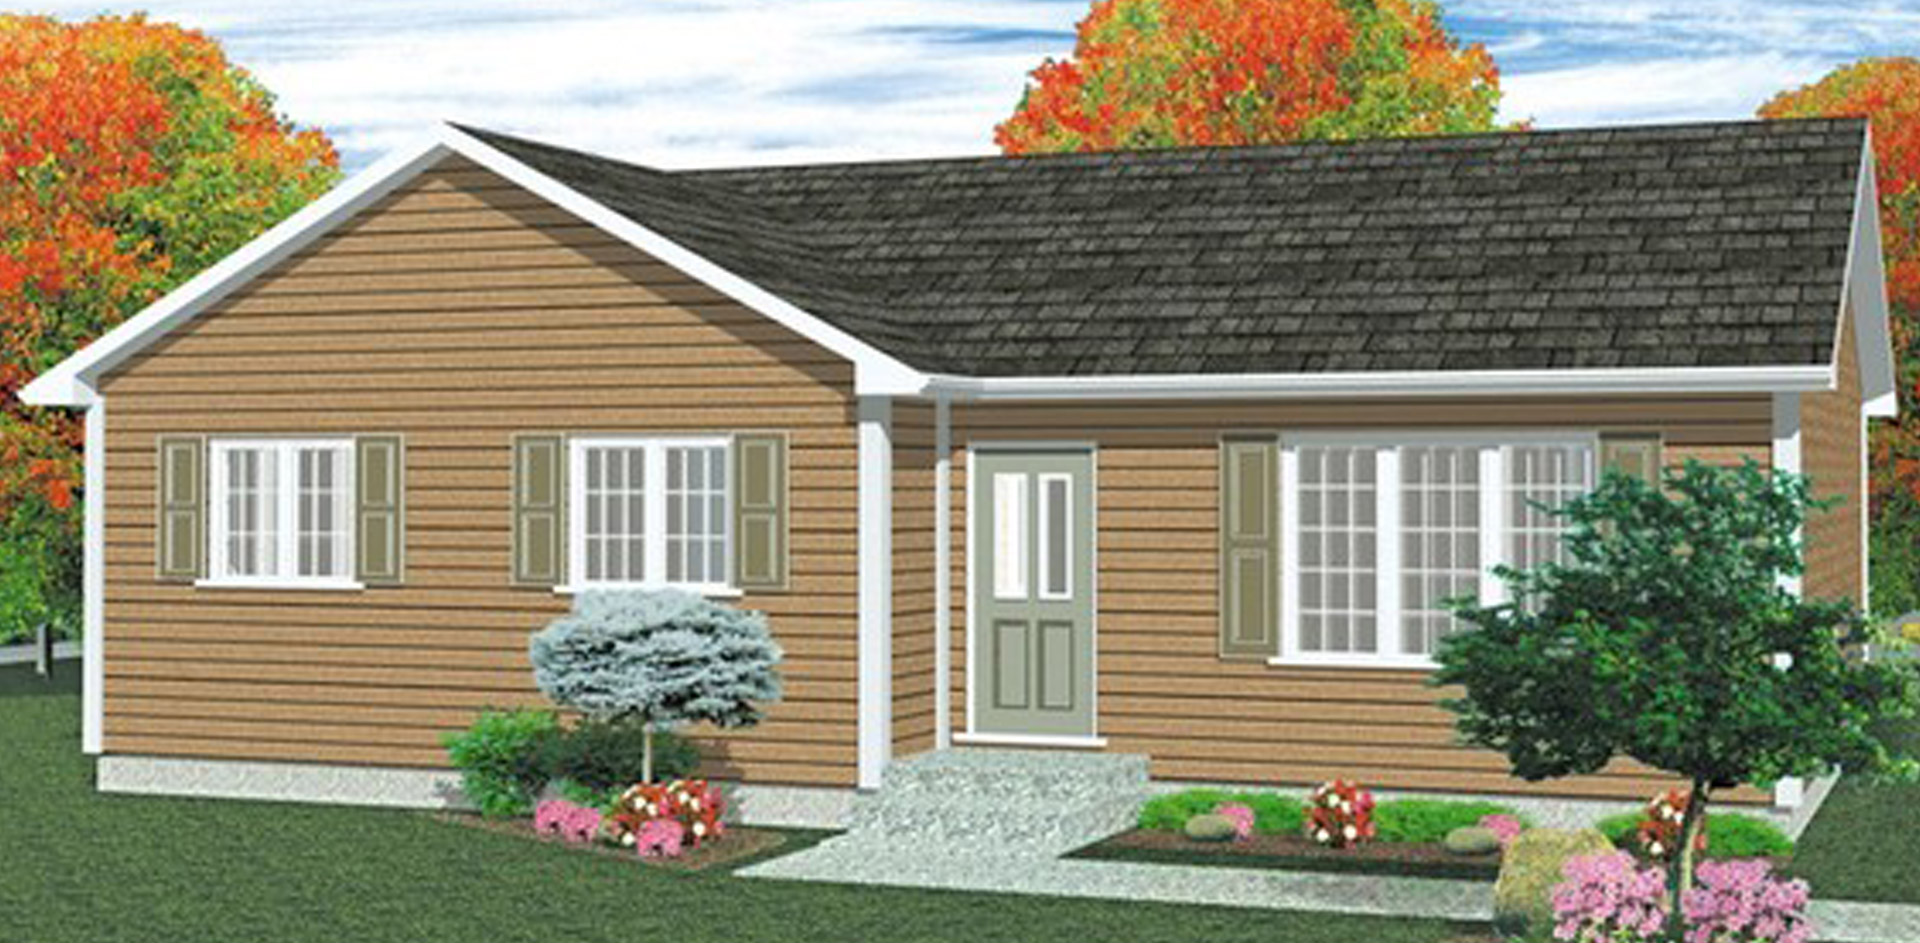 1044 sq.ft. timber mart house 3 bed 1 bath exterior render